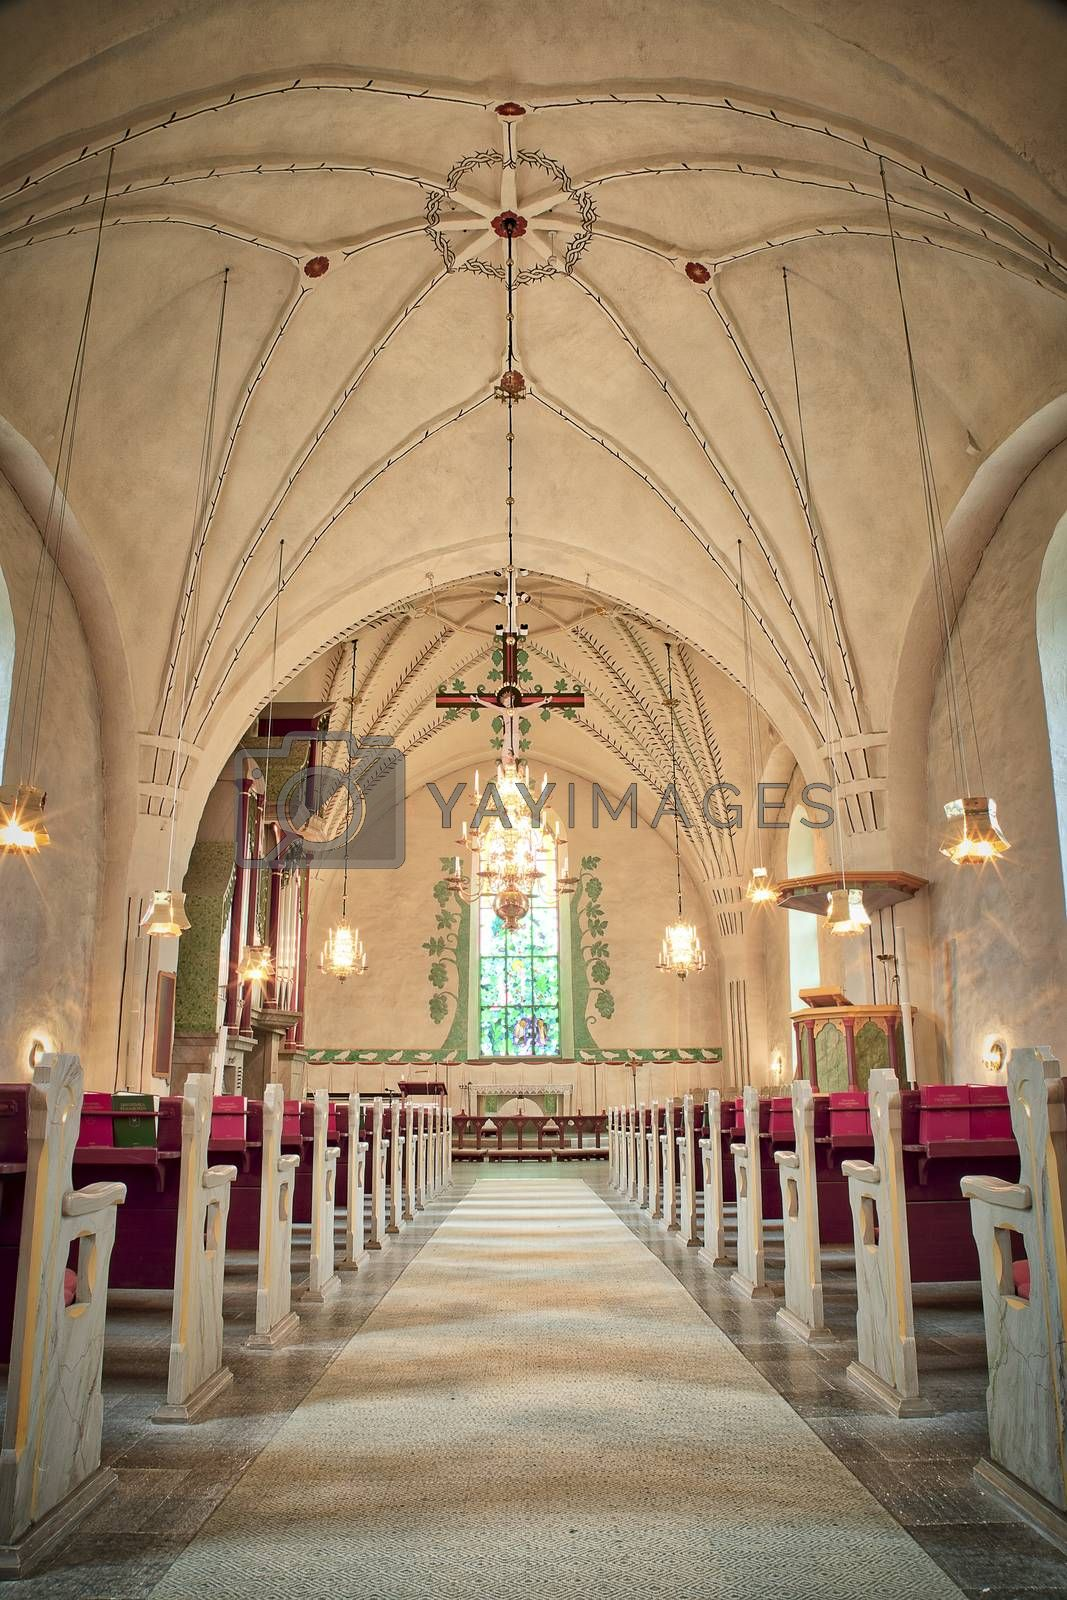 Royalty free image of Inside Church with Rows of Benches by Emmoth